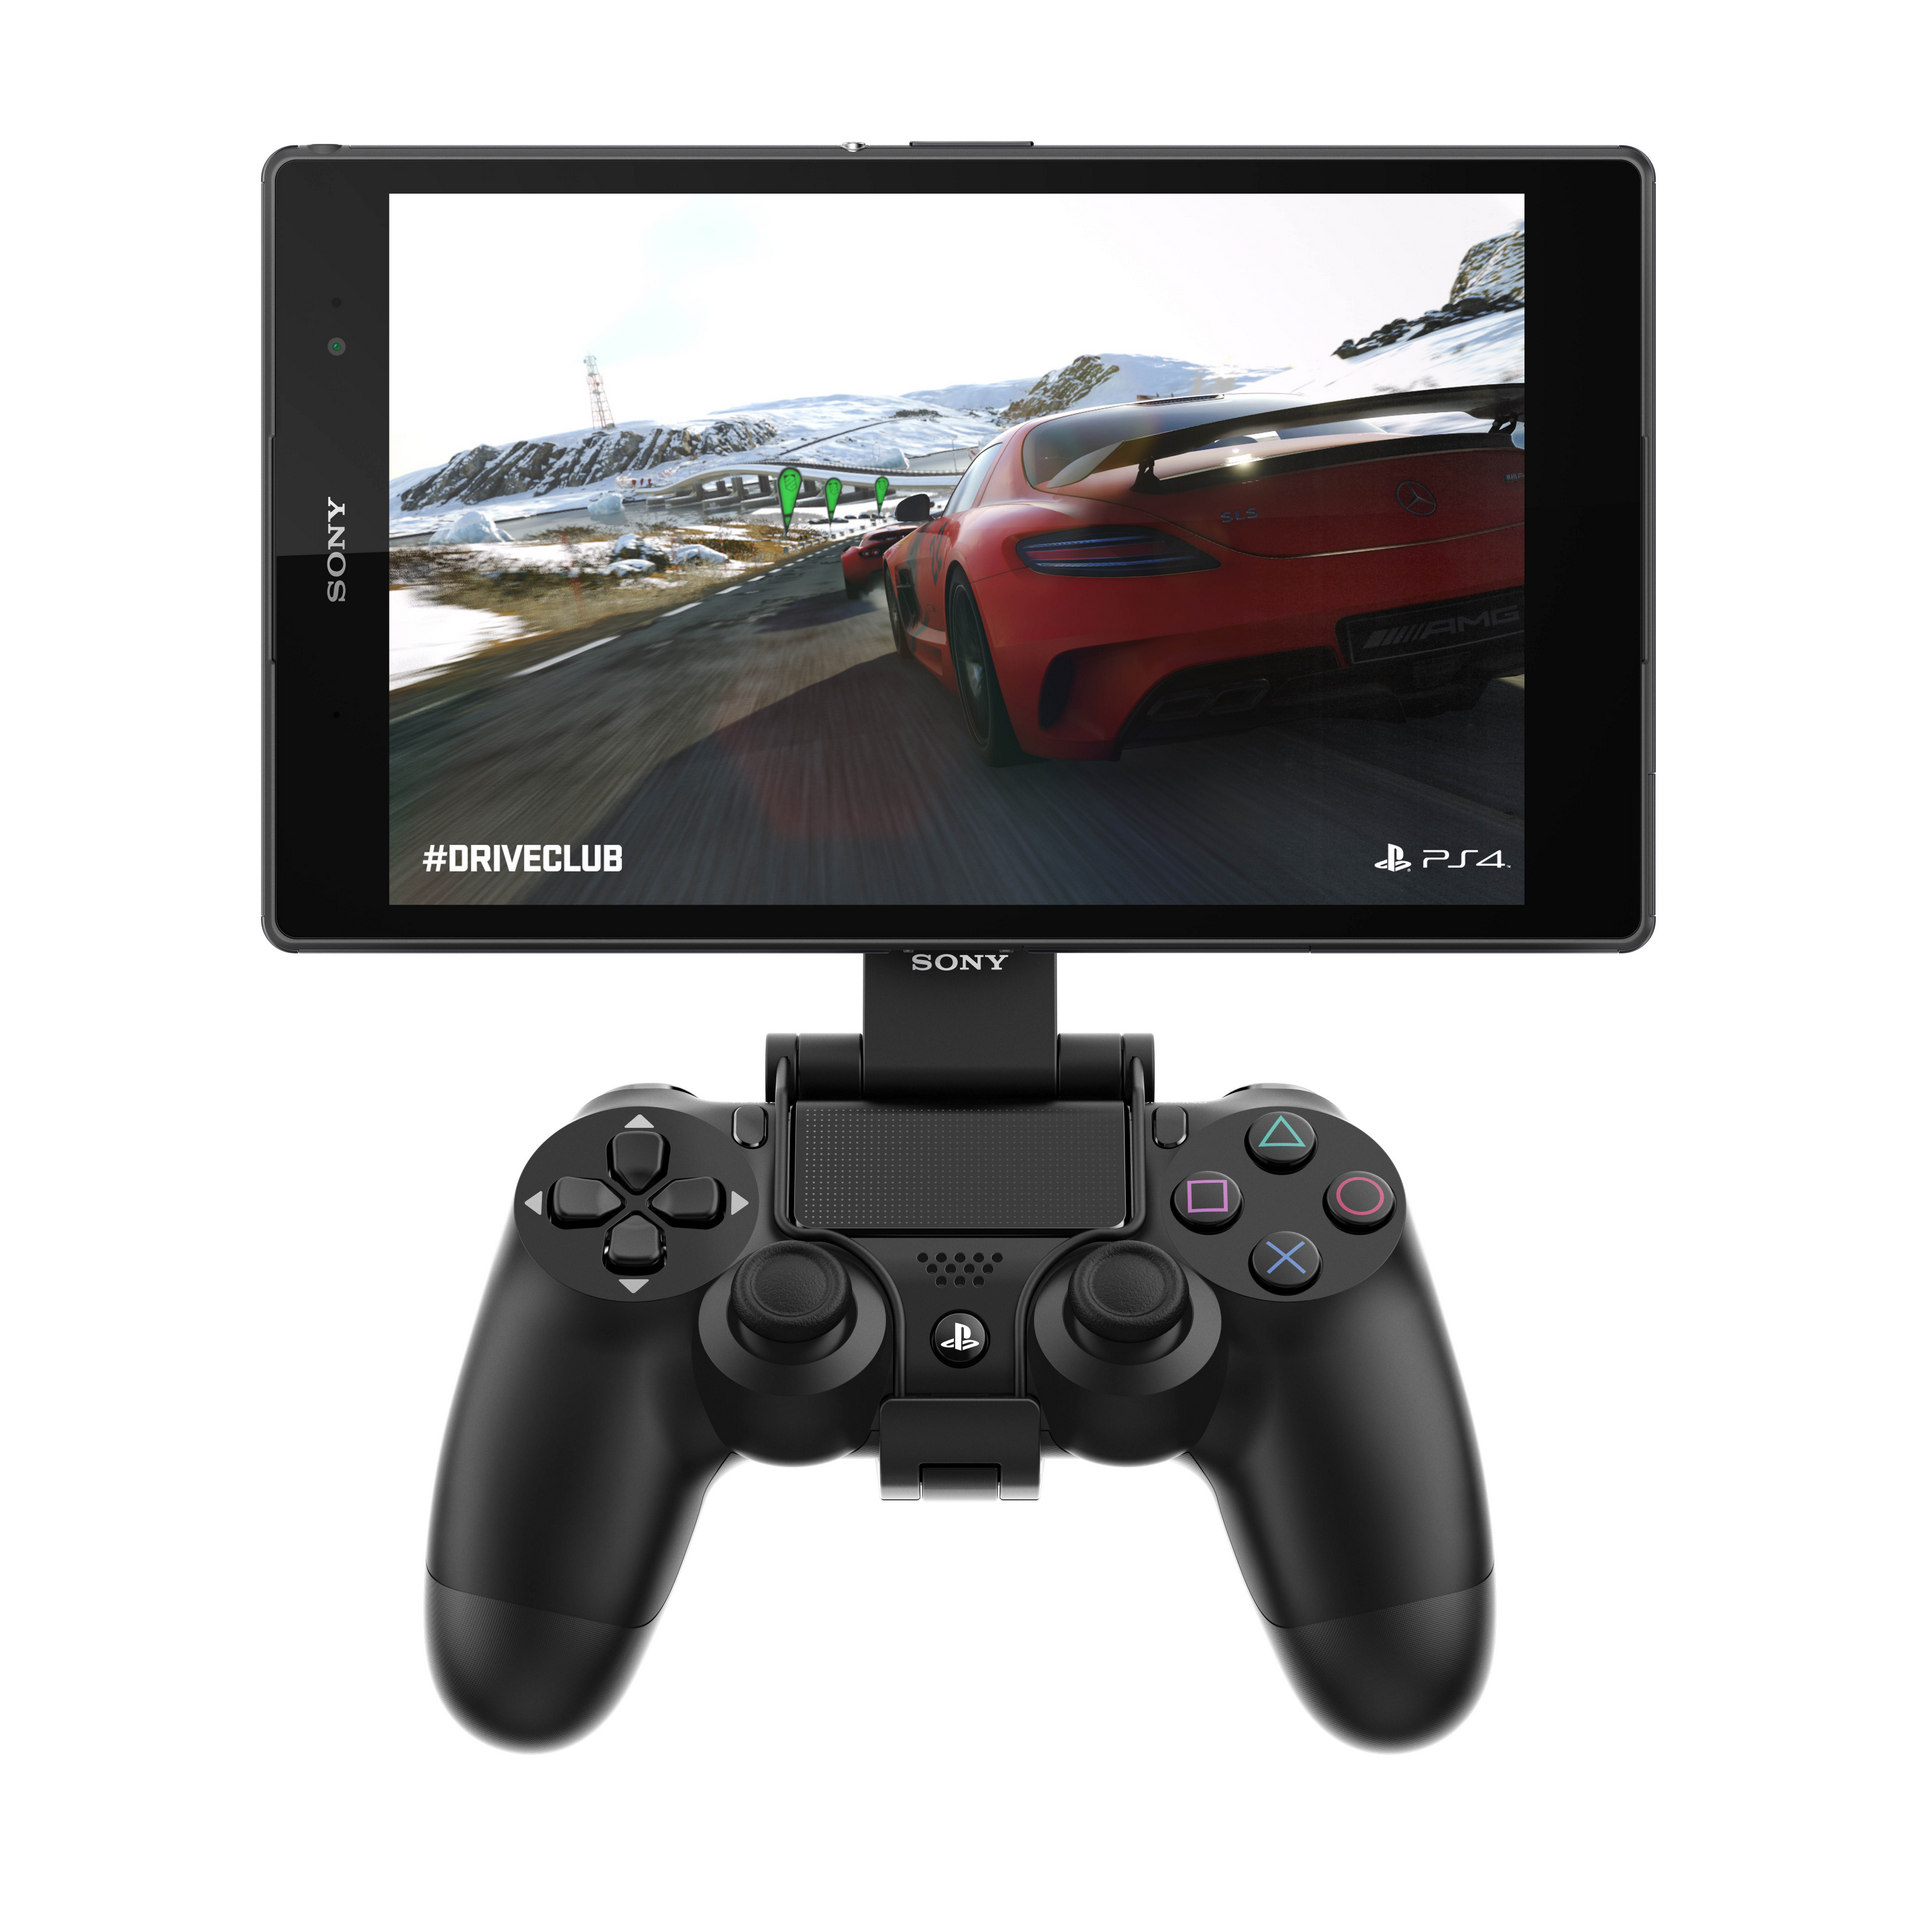 PS4 games can be played on Sony Z3 phones and tablets with remote play